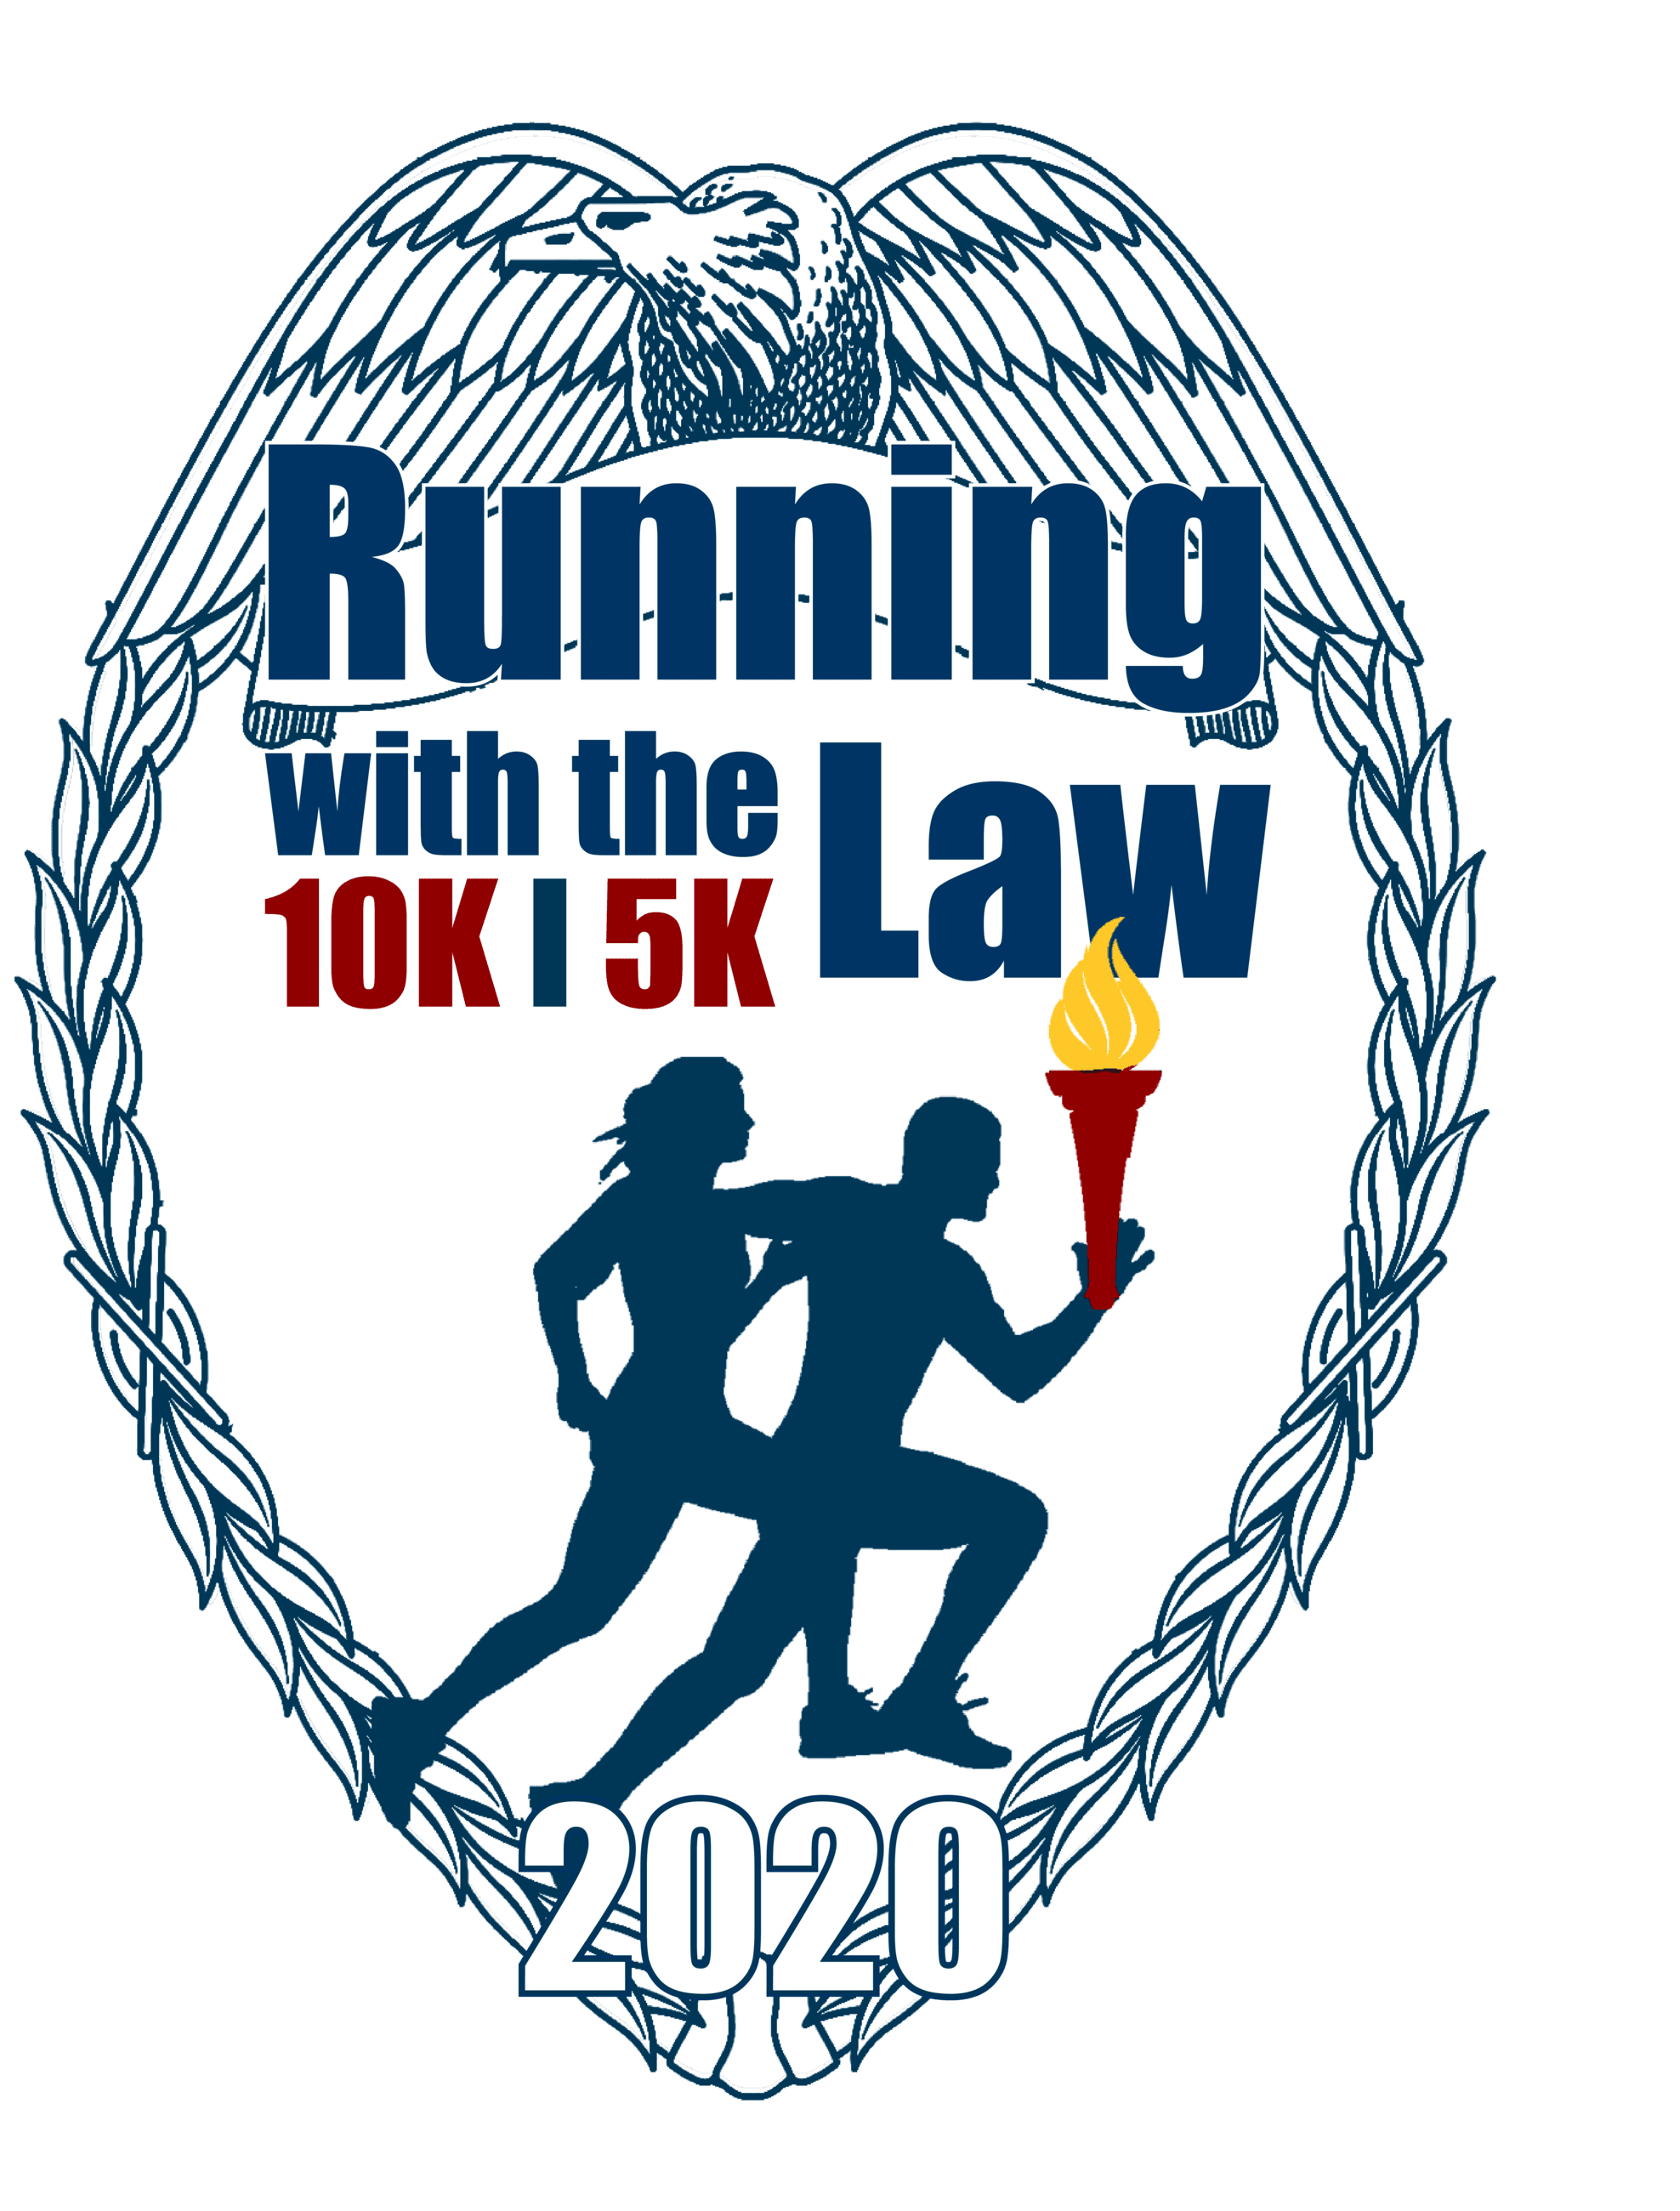 Running With the Law 2020 Medal